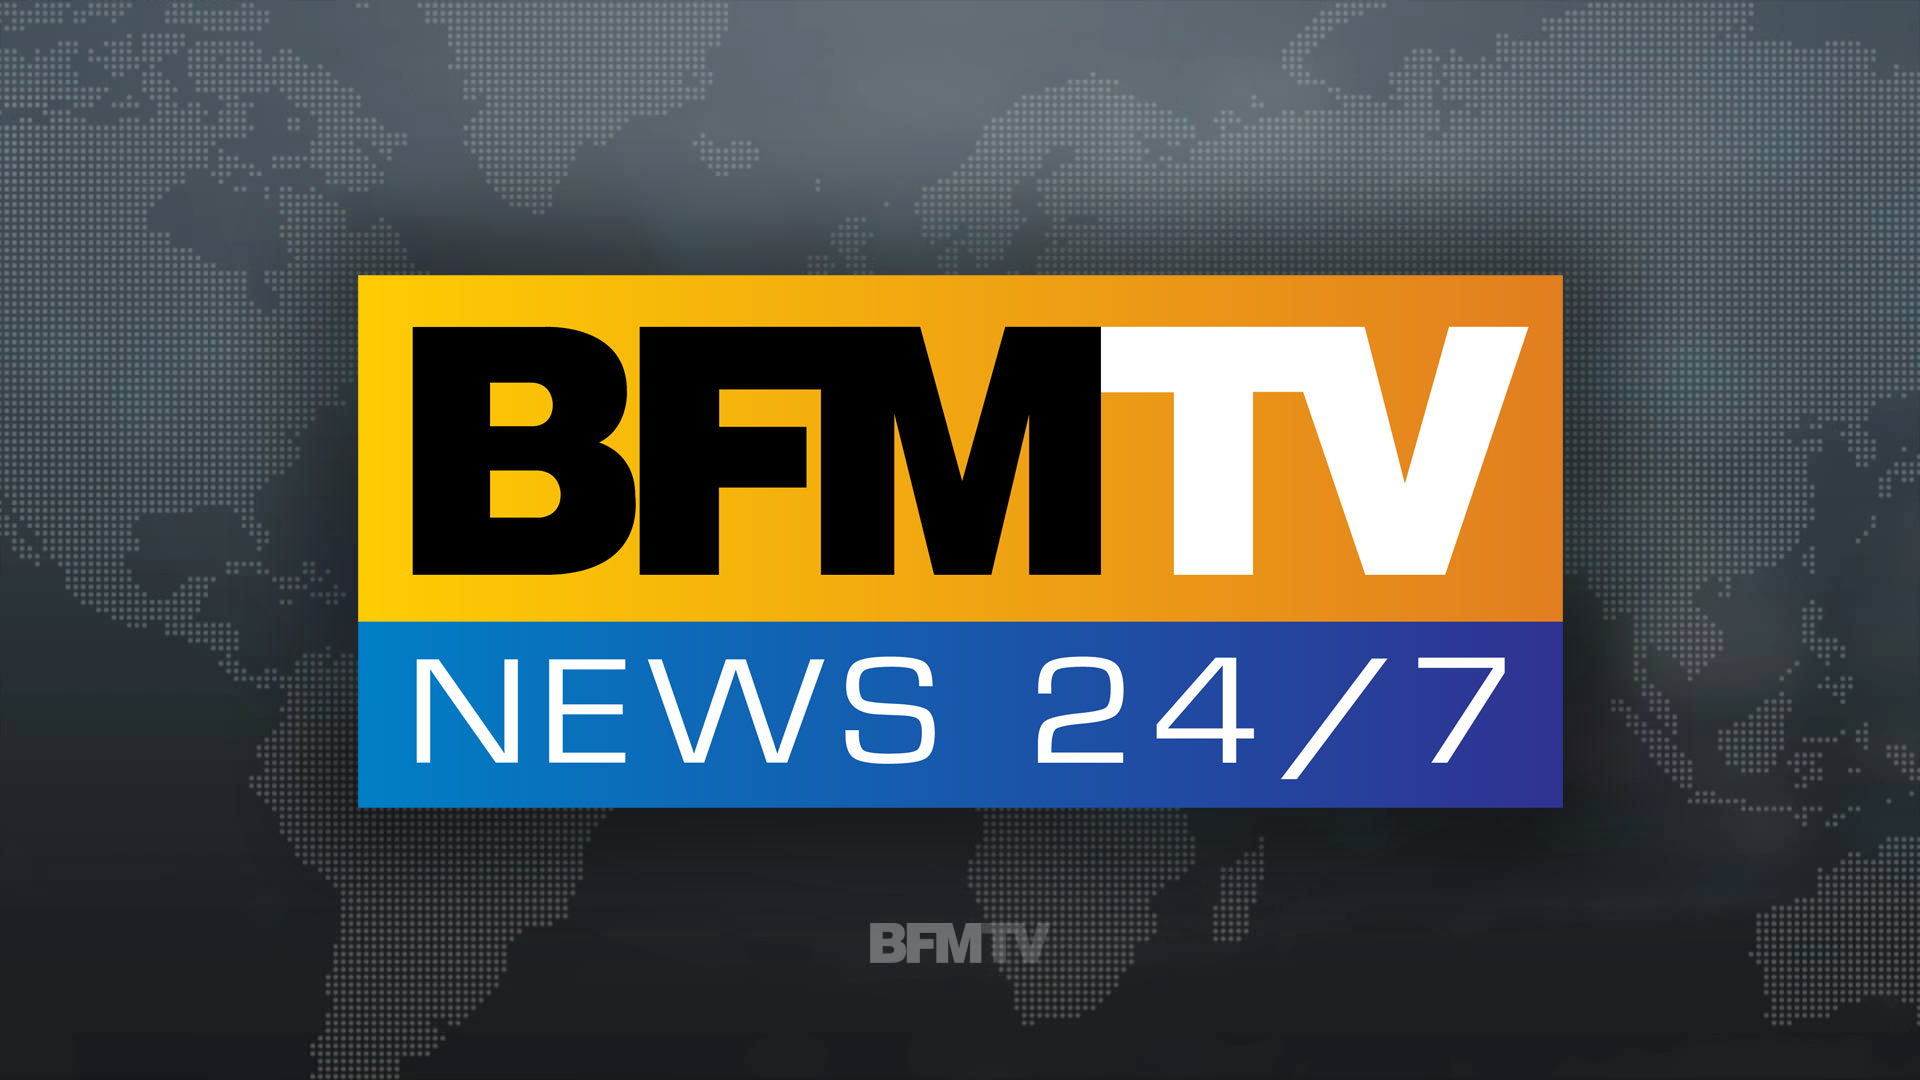 Logo BFMTV en direct